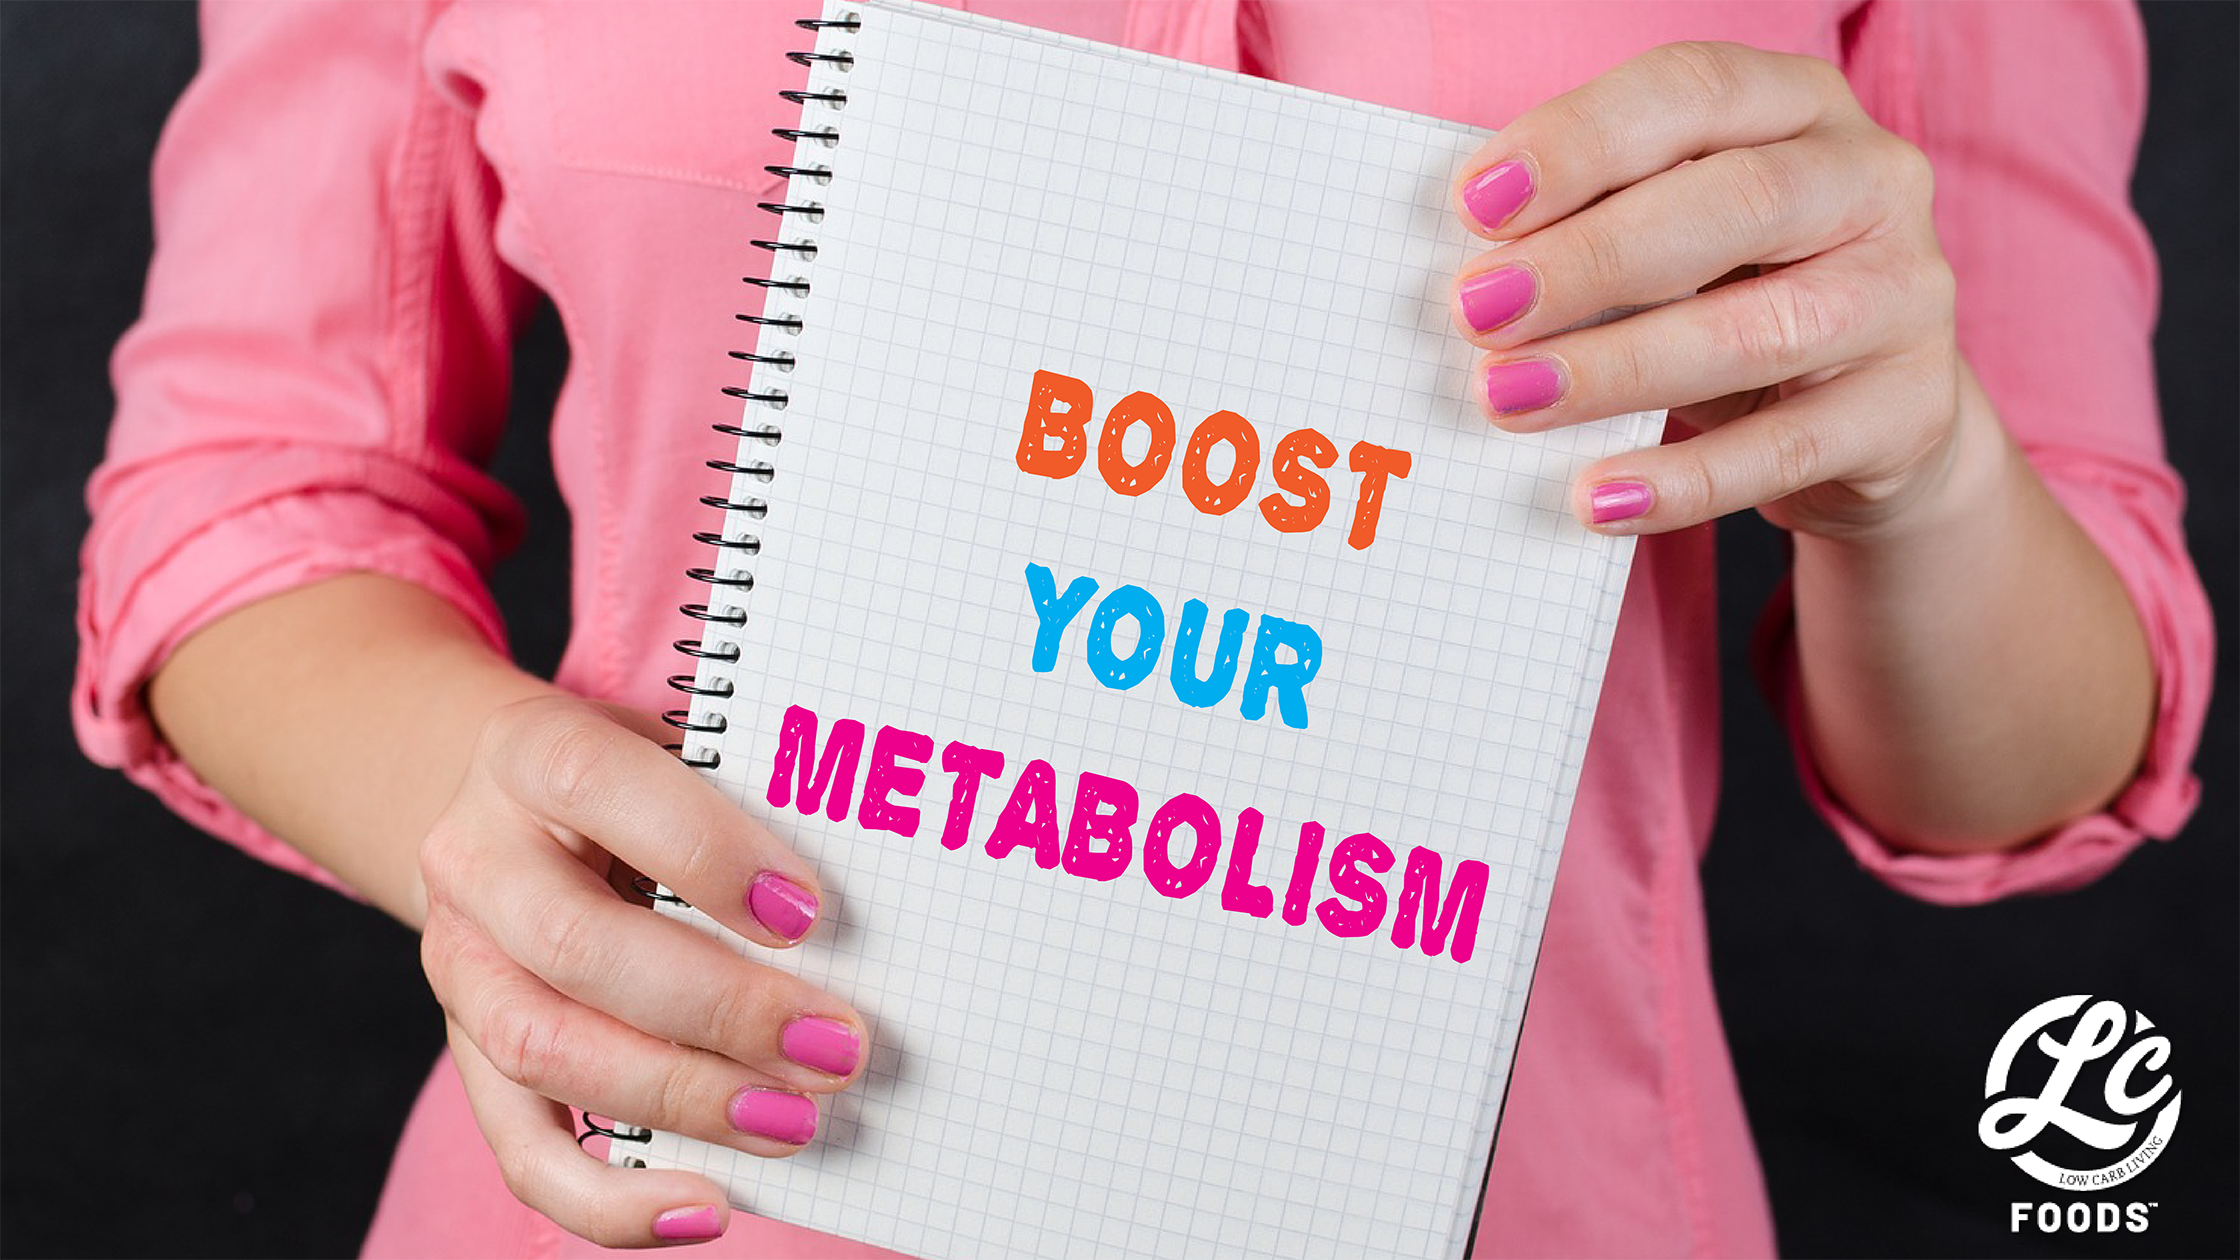 Thumbnail for Low Carb Diets Have a Metabolic Advantage